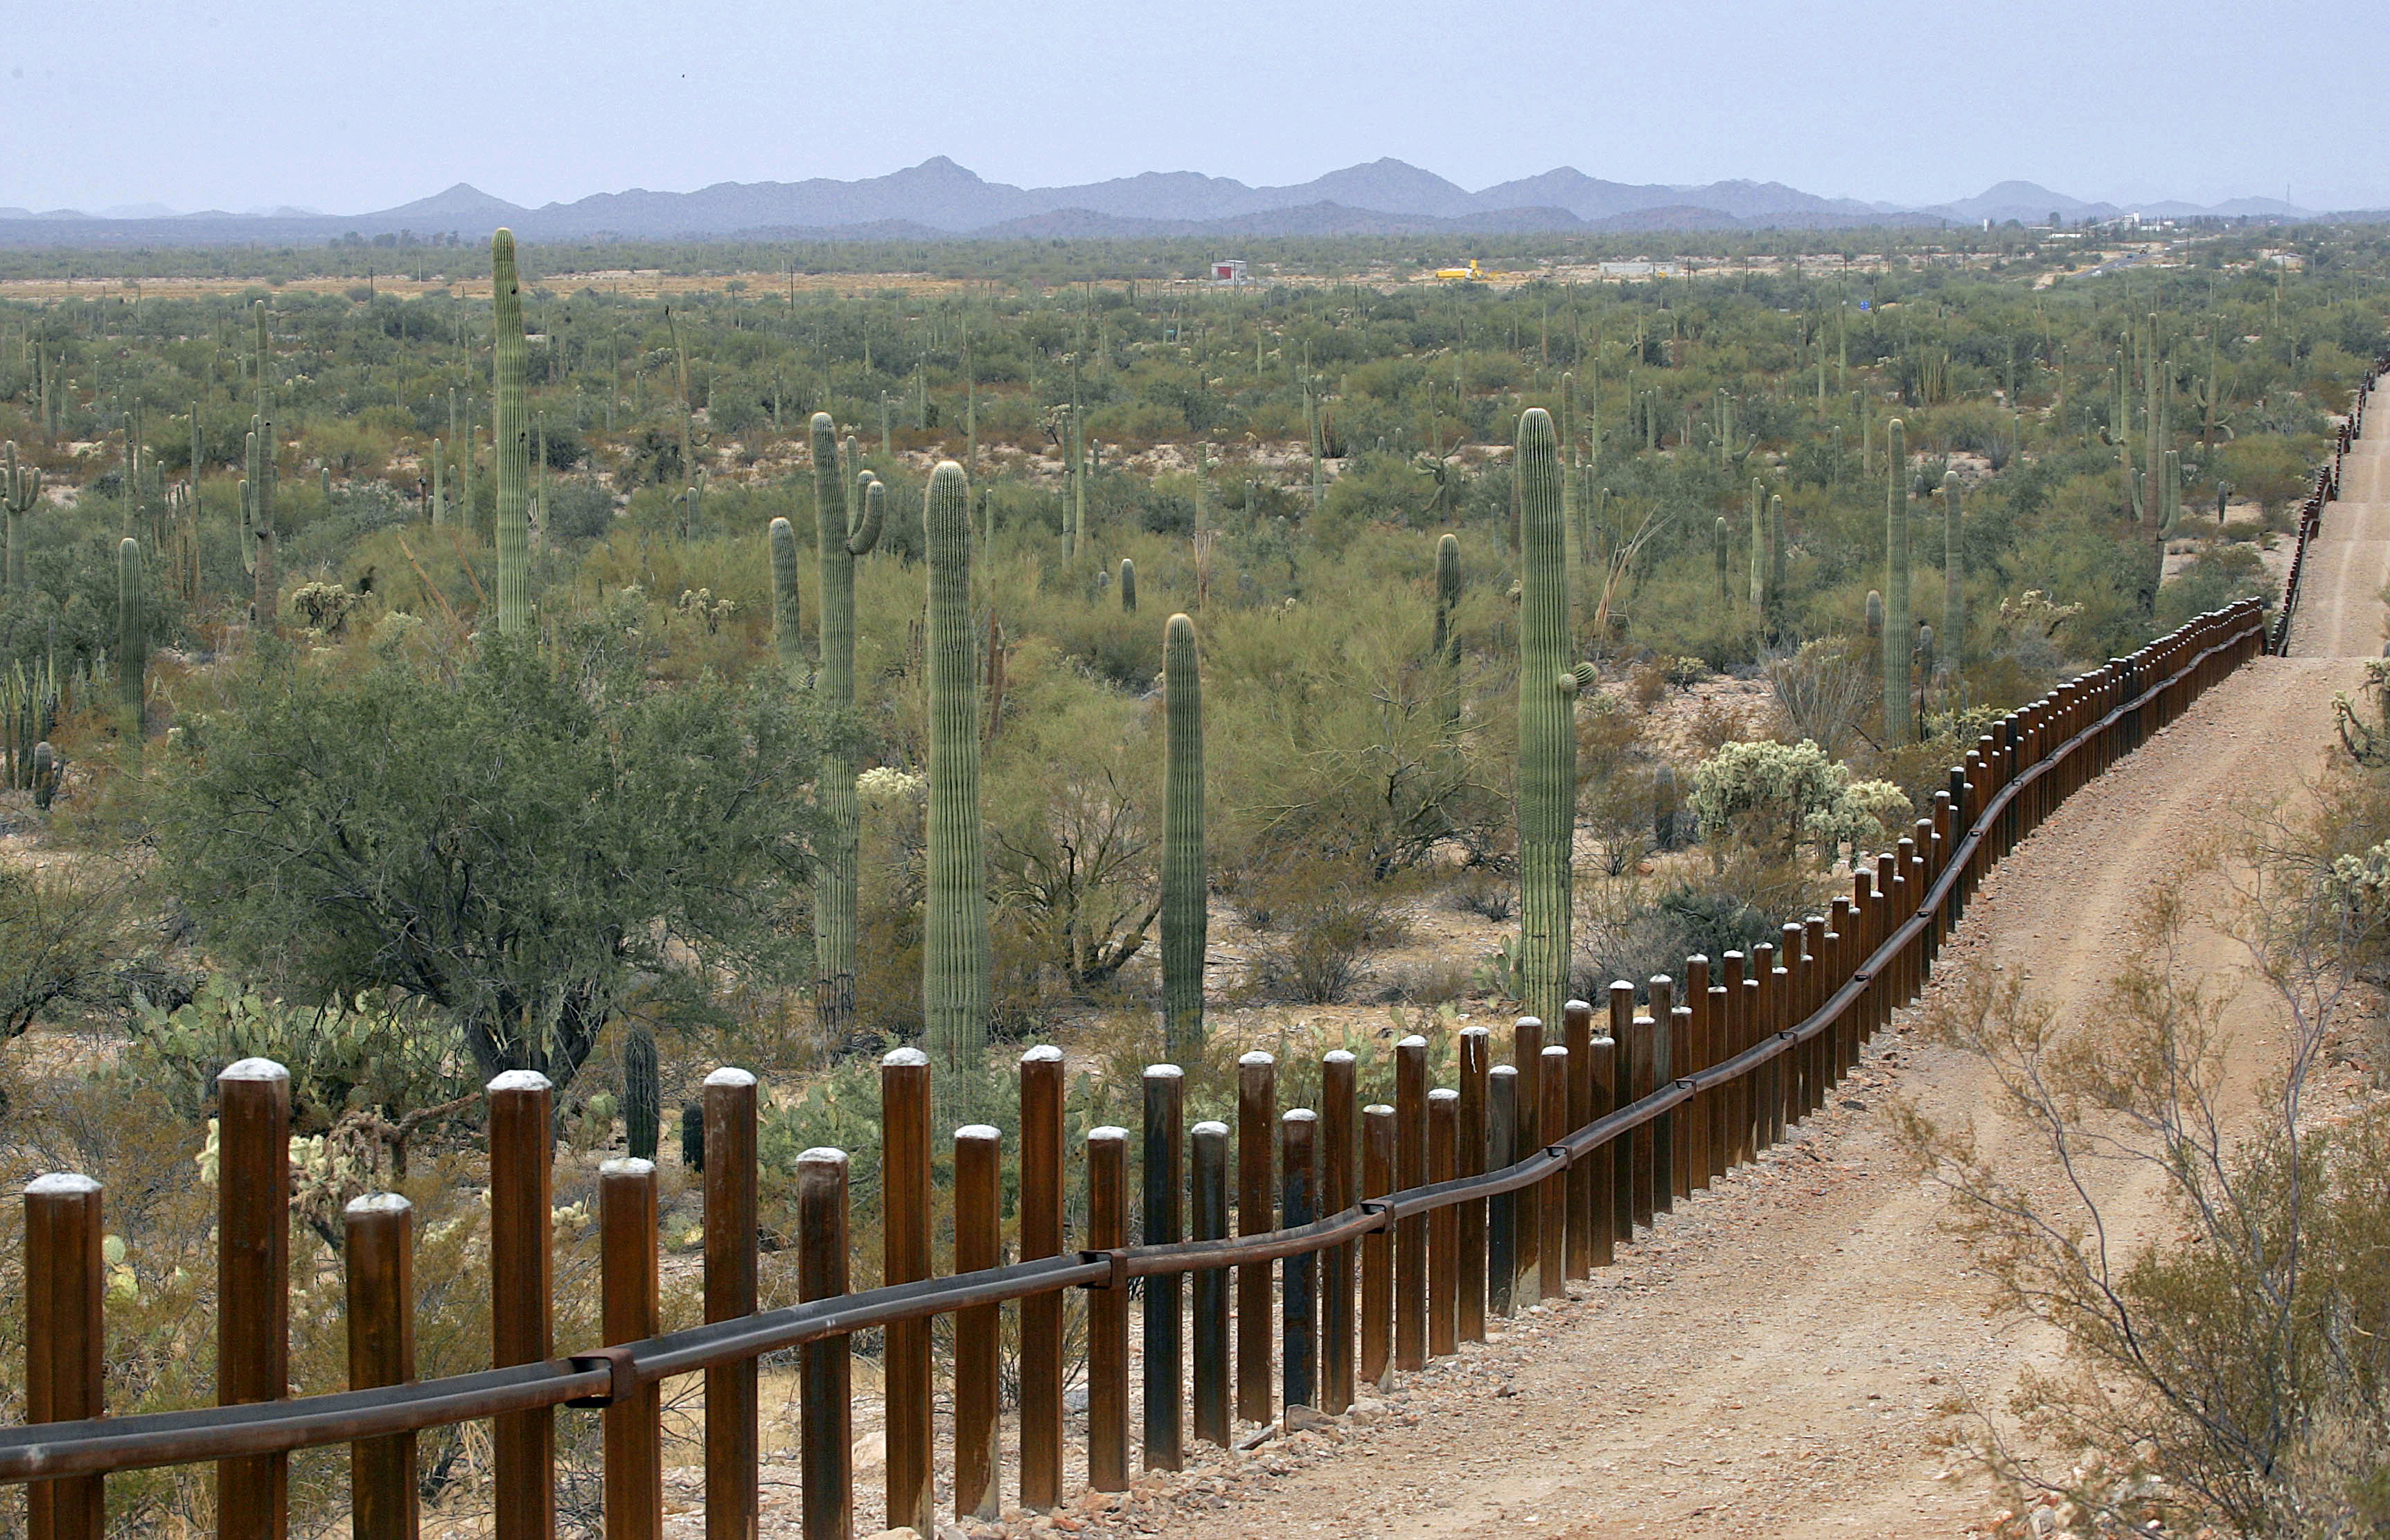 FILE - The international border line made up of bollards separating Mexico, left from the United States, in the Organ Pipe National Monument near Lukeville, Ariz., Feb. 17, 2006.